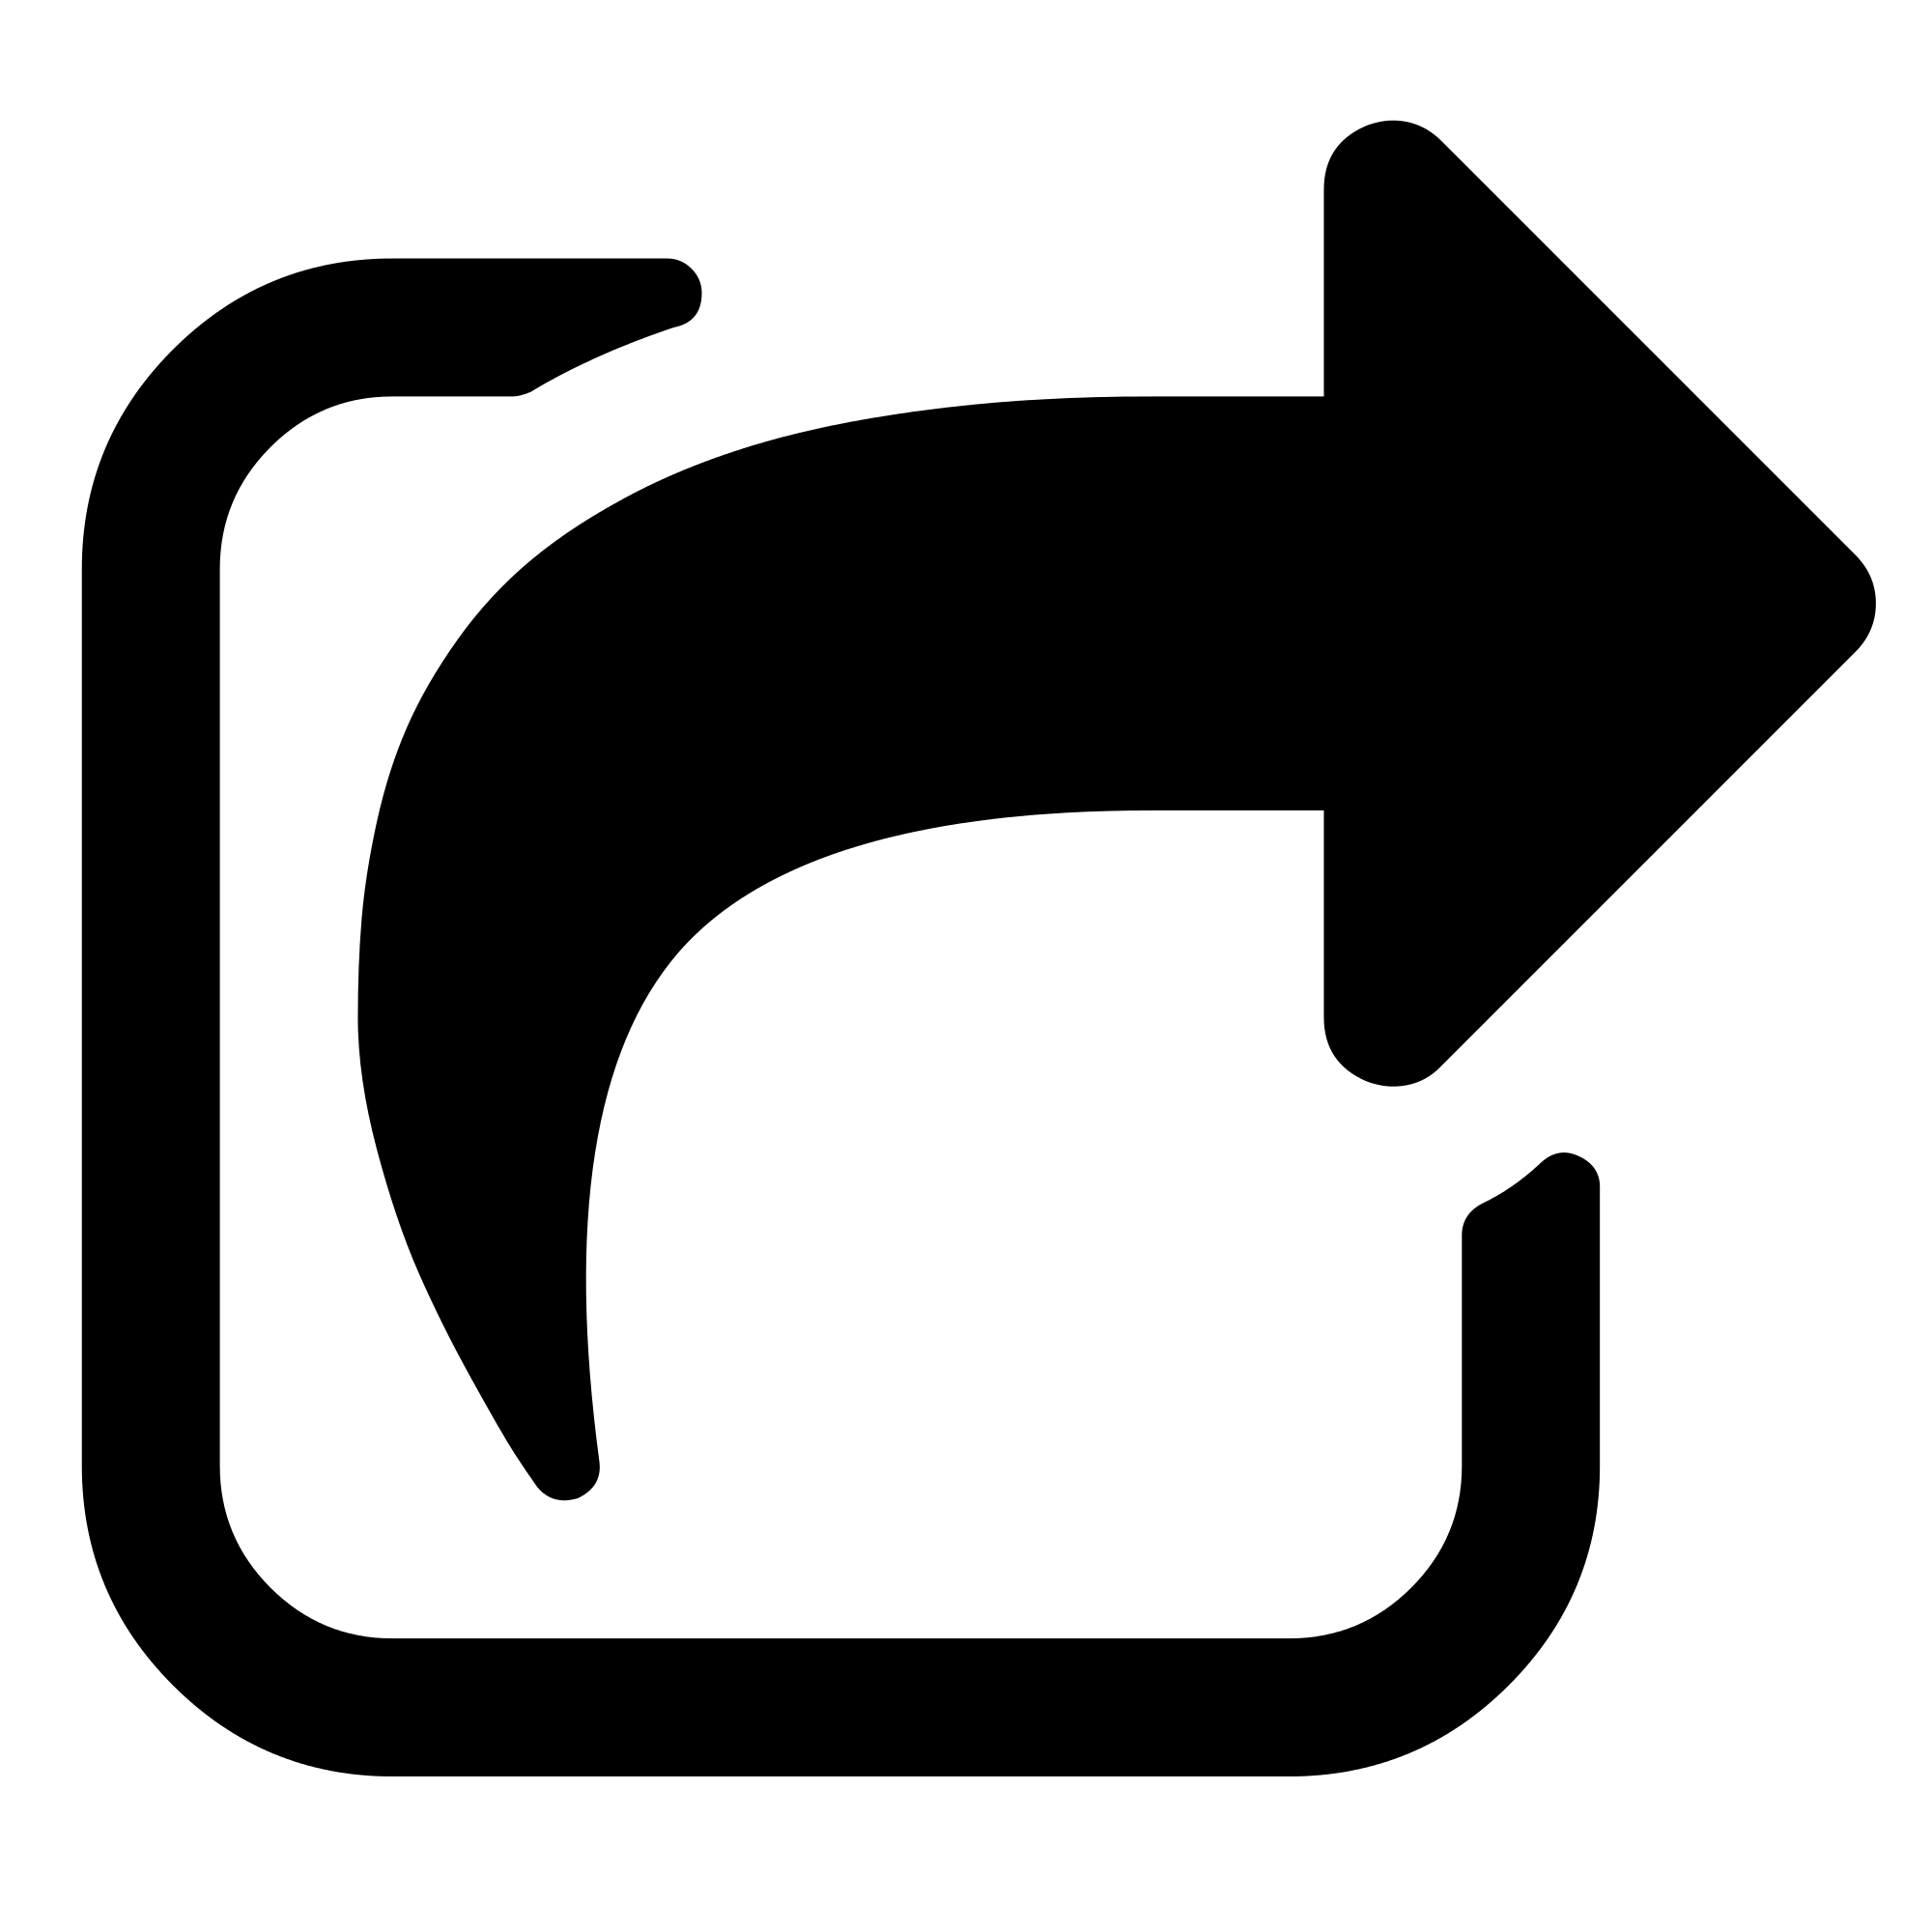 Black and White Share Icon Arrow PNG Image.